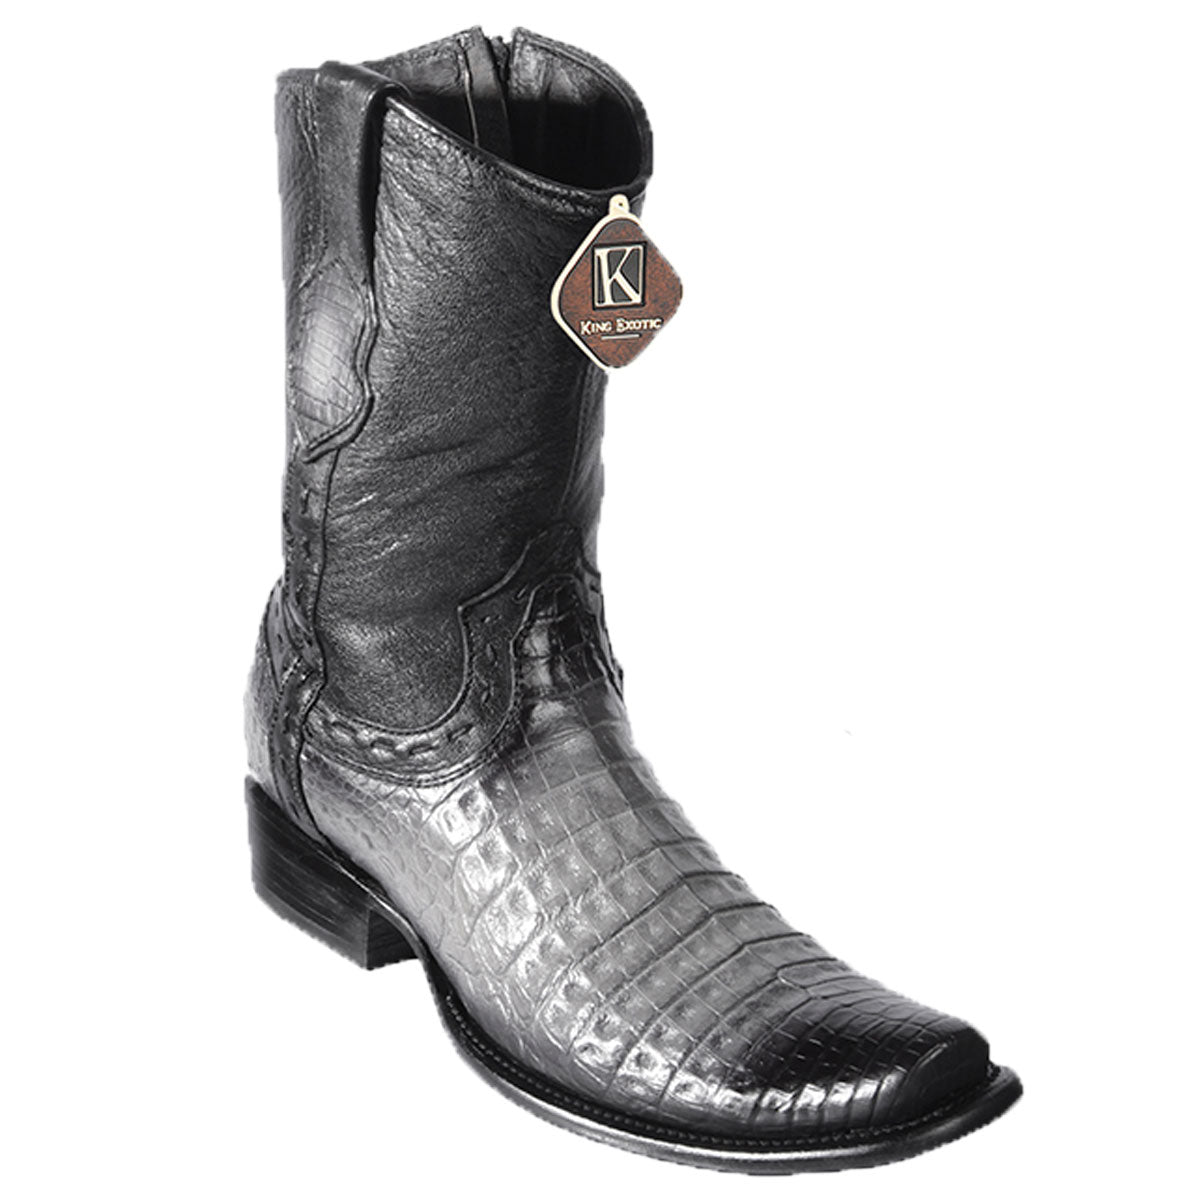 Caiman Belly Skin Dubai Boot 479B82